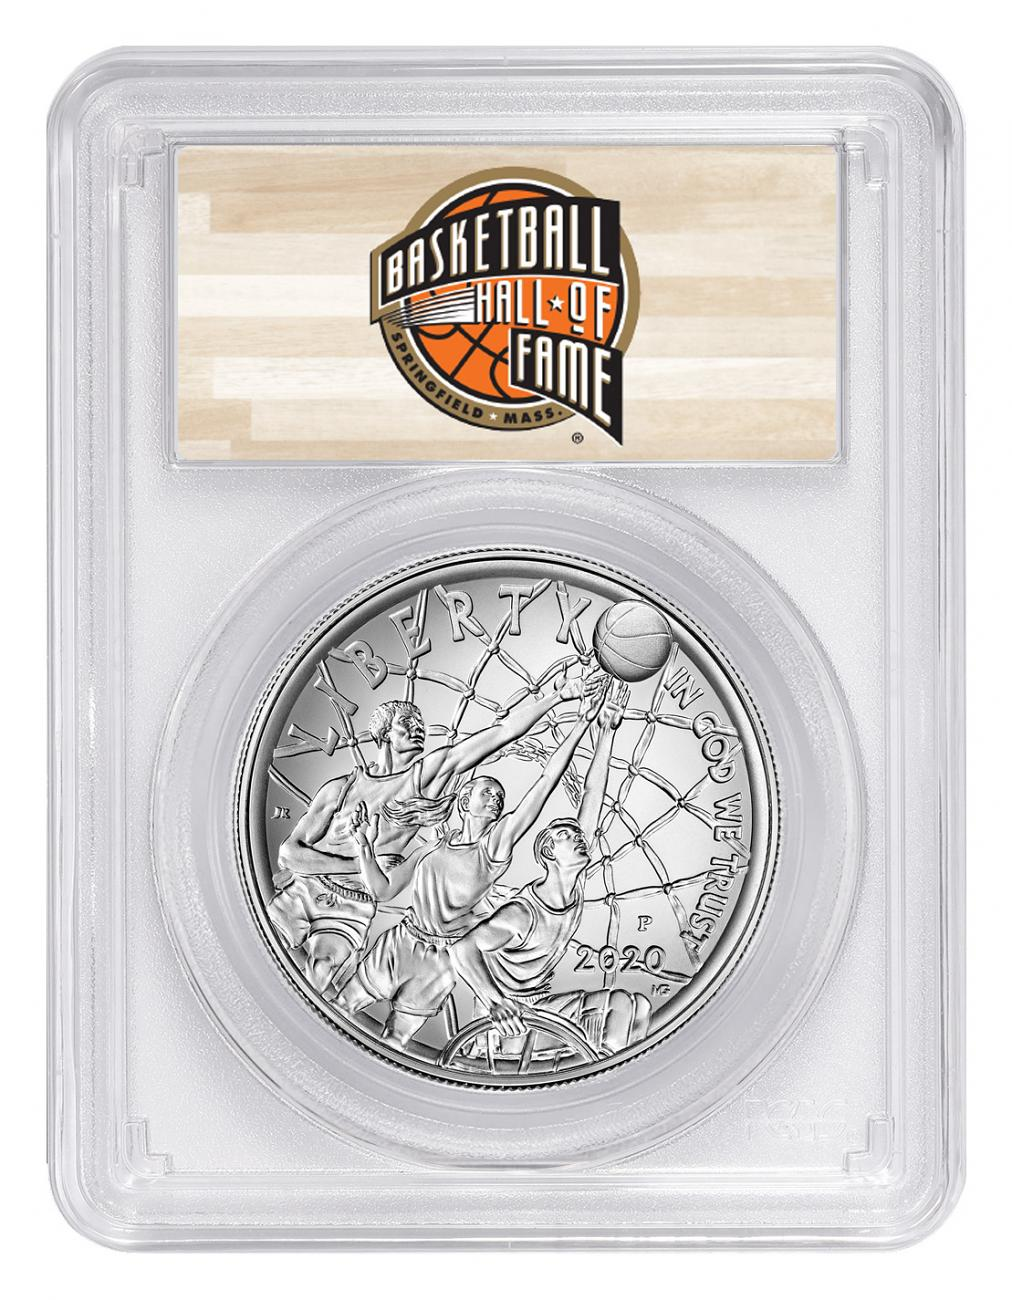 2020-P $1 Basketball Hall of Fame Silver Dollar Coin PCGS MS70 FS Hall of Fame Label